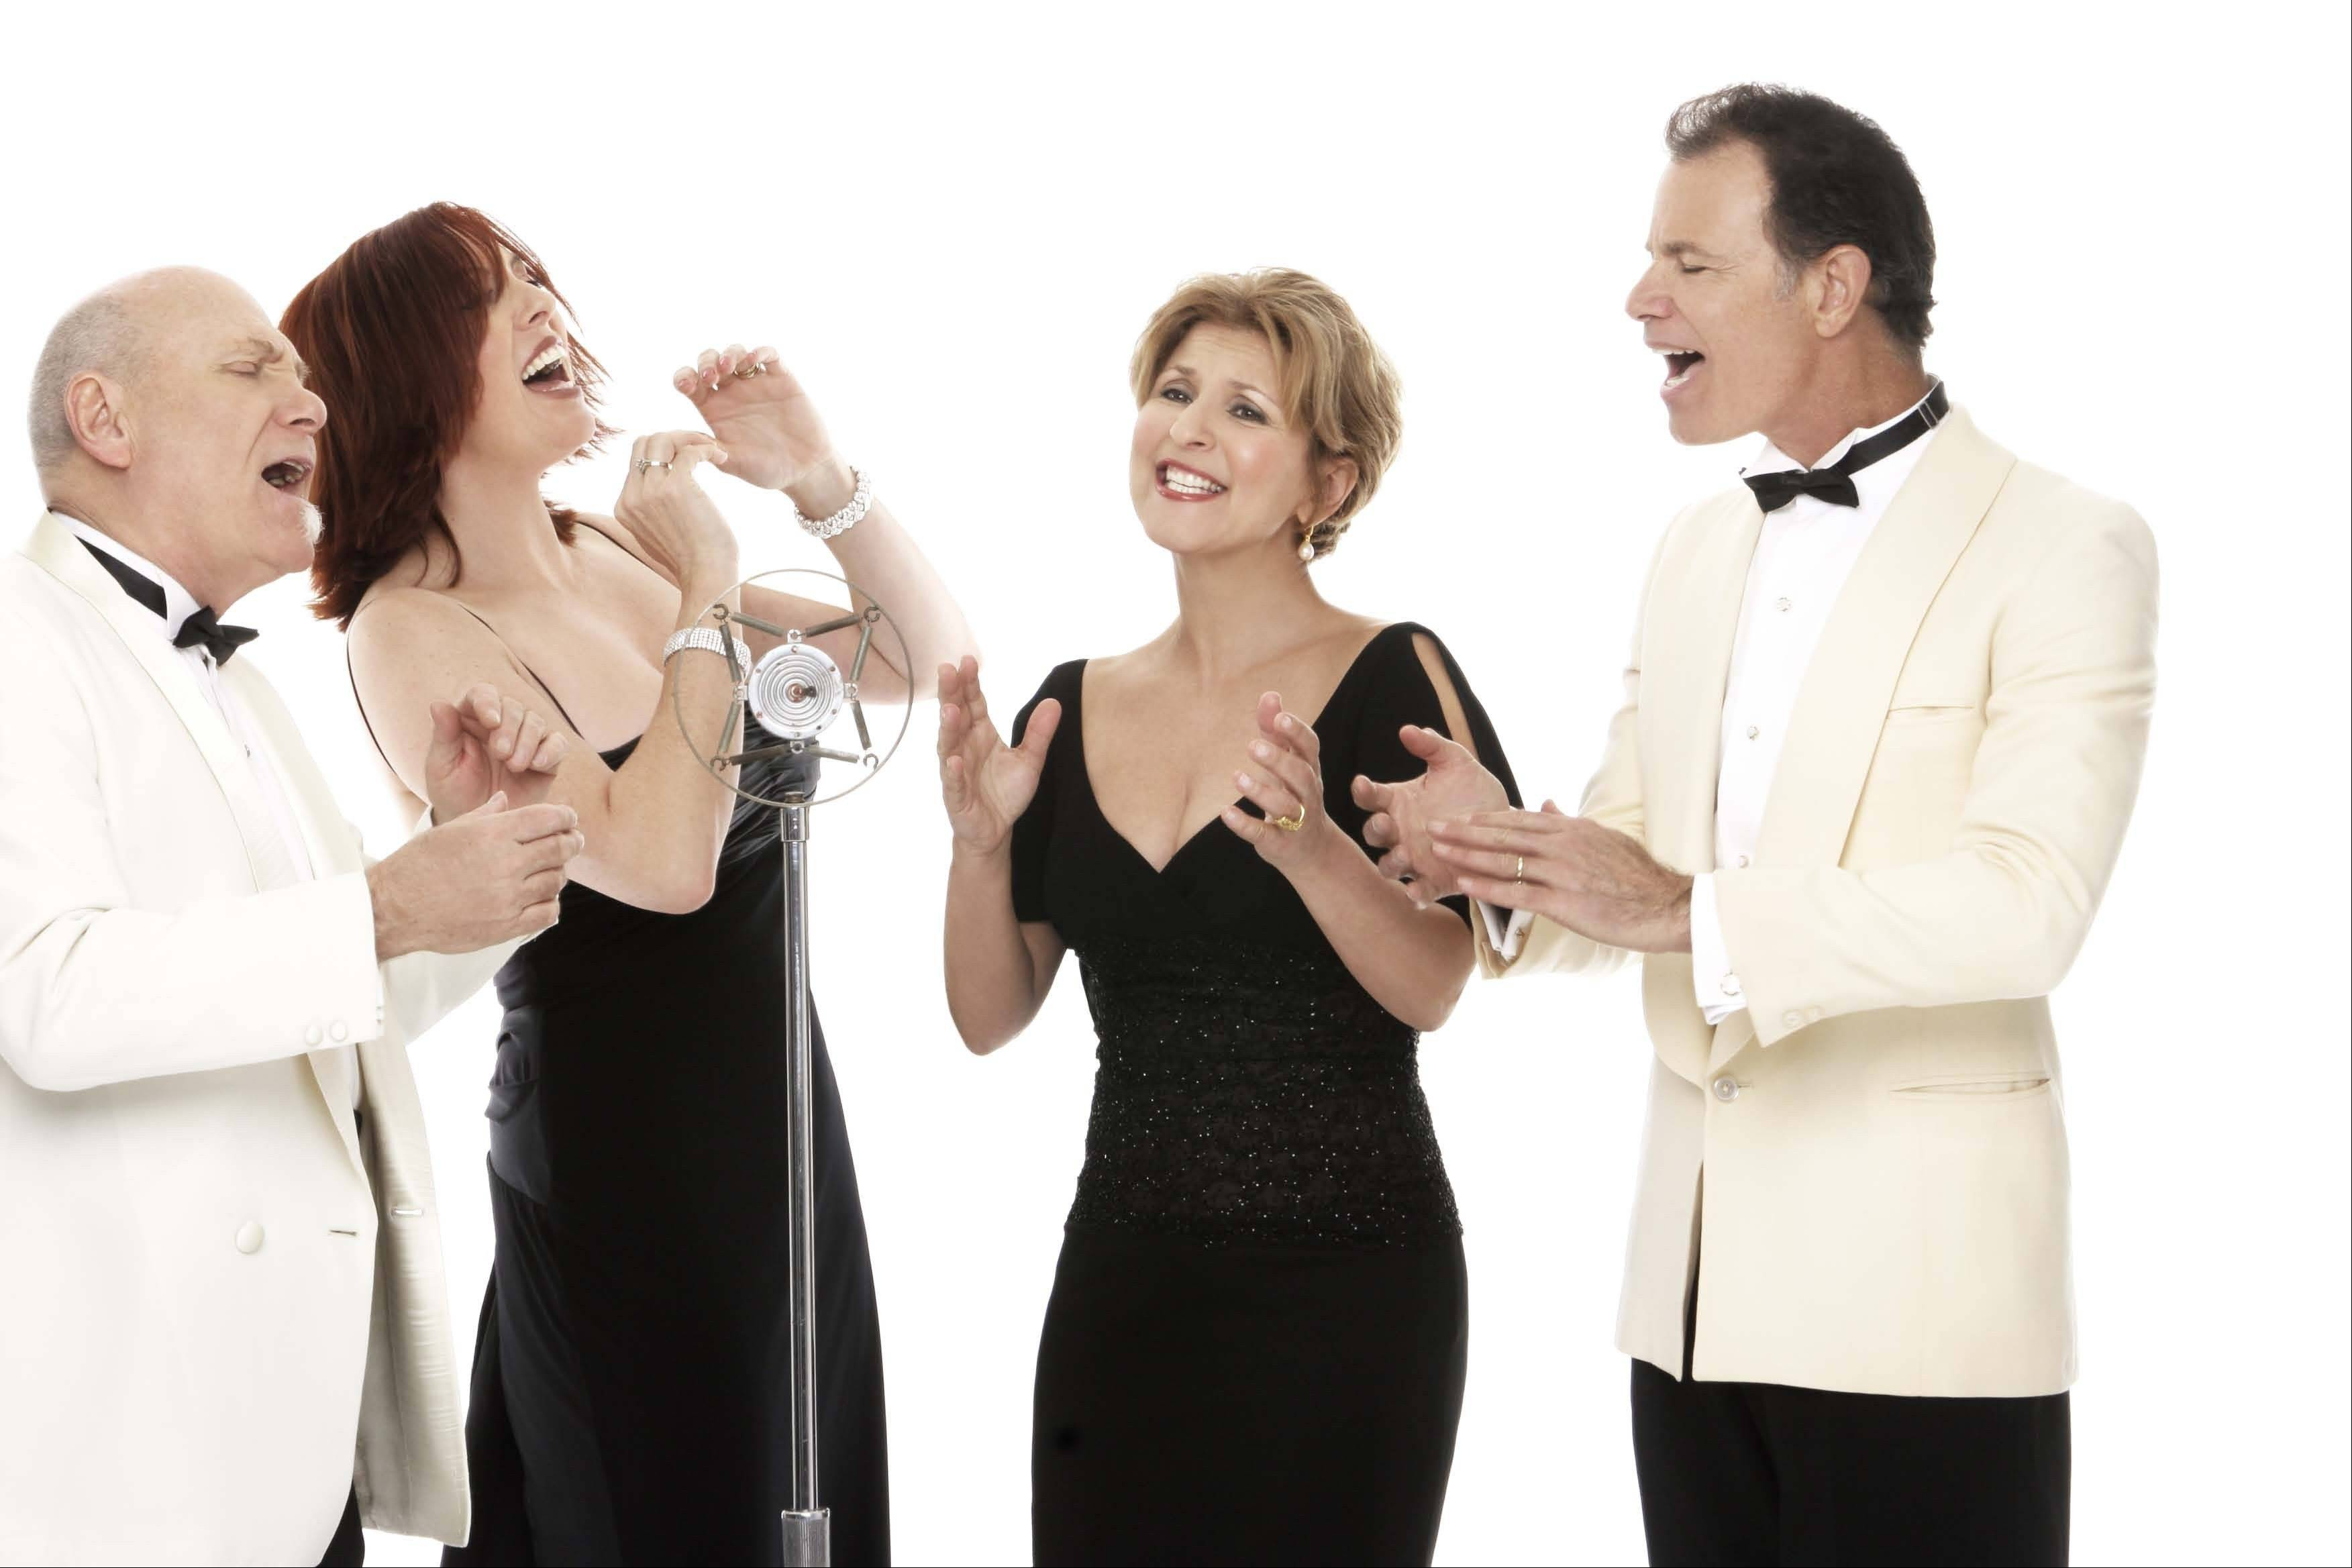 The Manhattan Transfer Swings Christmas performs at 8 p.m. Saturday, Dec. 21, at the Genesee Theatre in Waukegan.